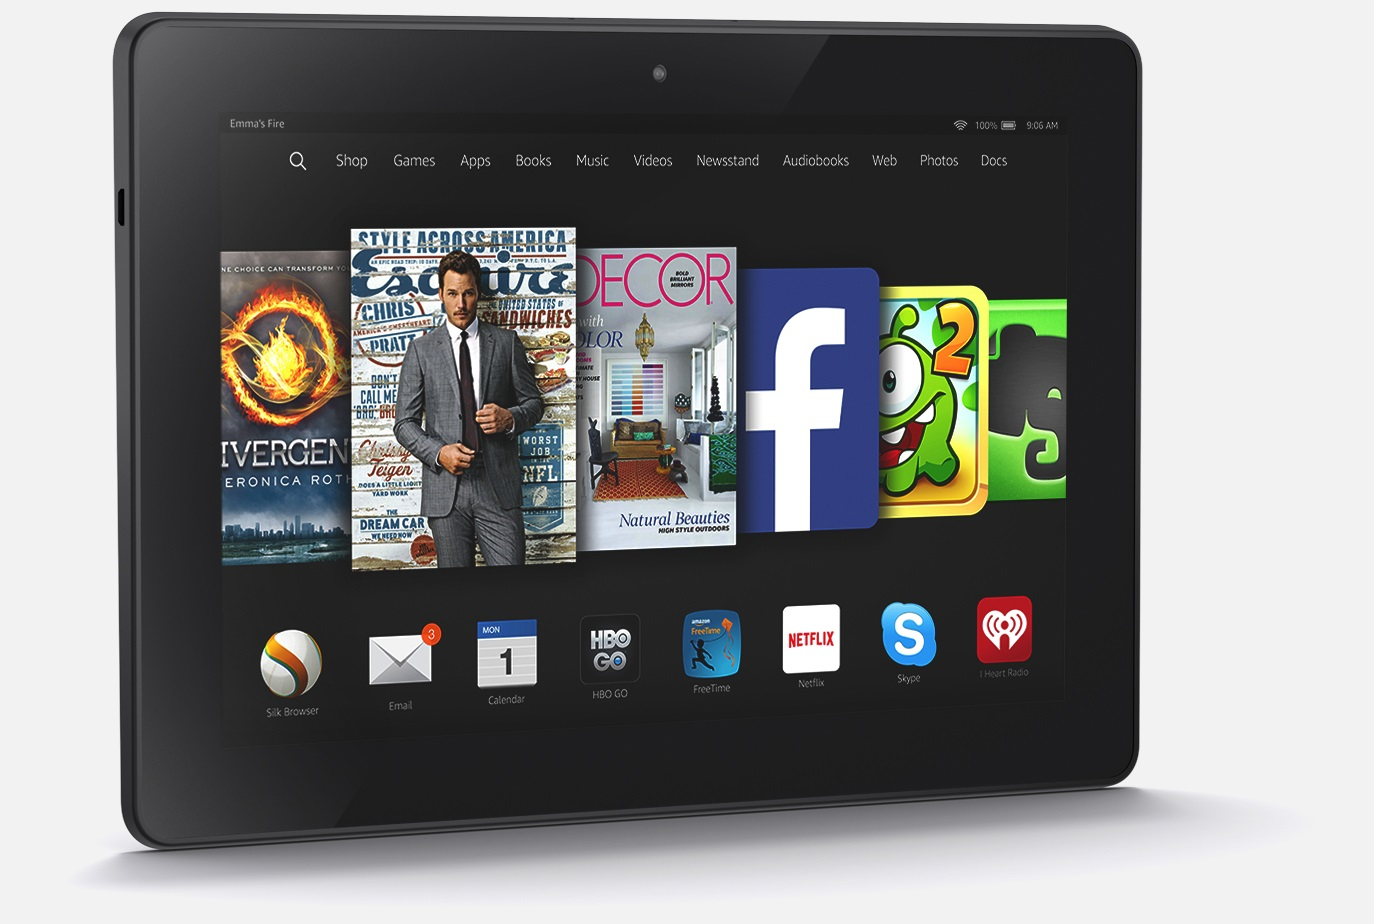 New Kindle Fire HDX 8.9 2014-2015 Edition